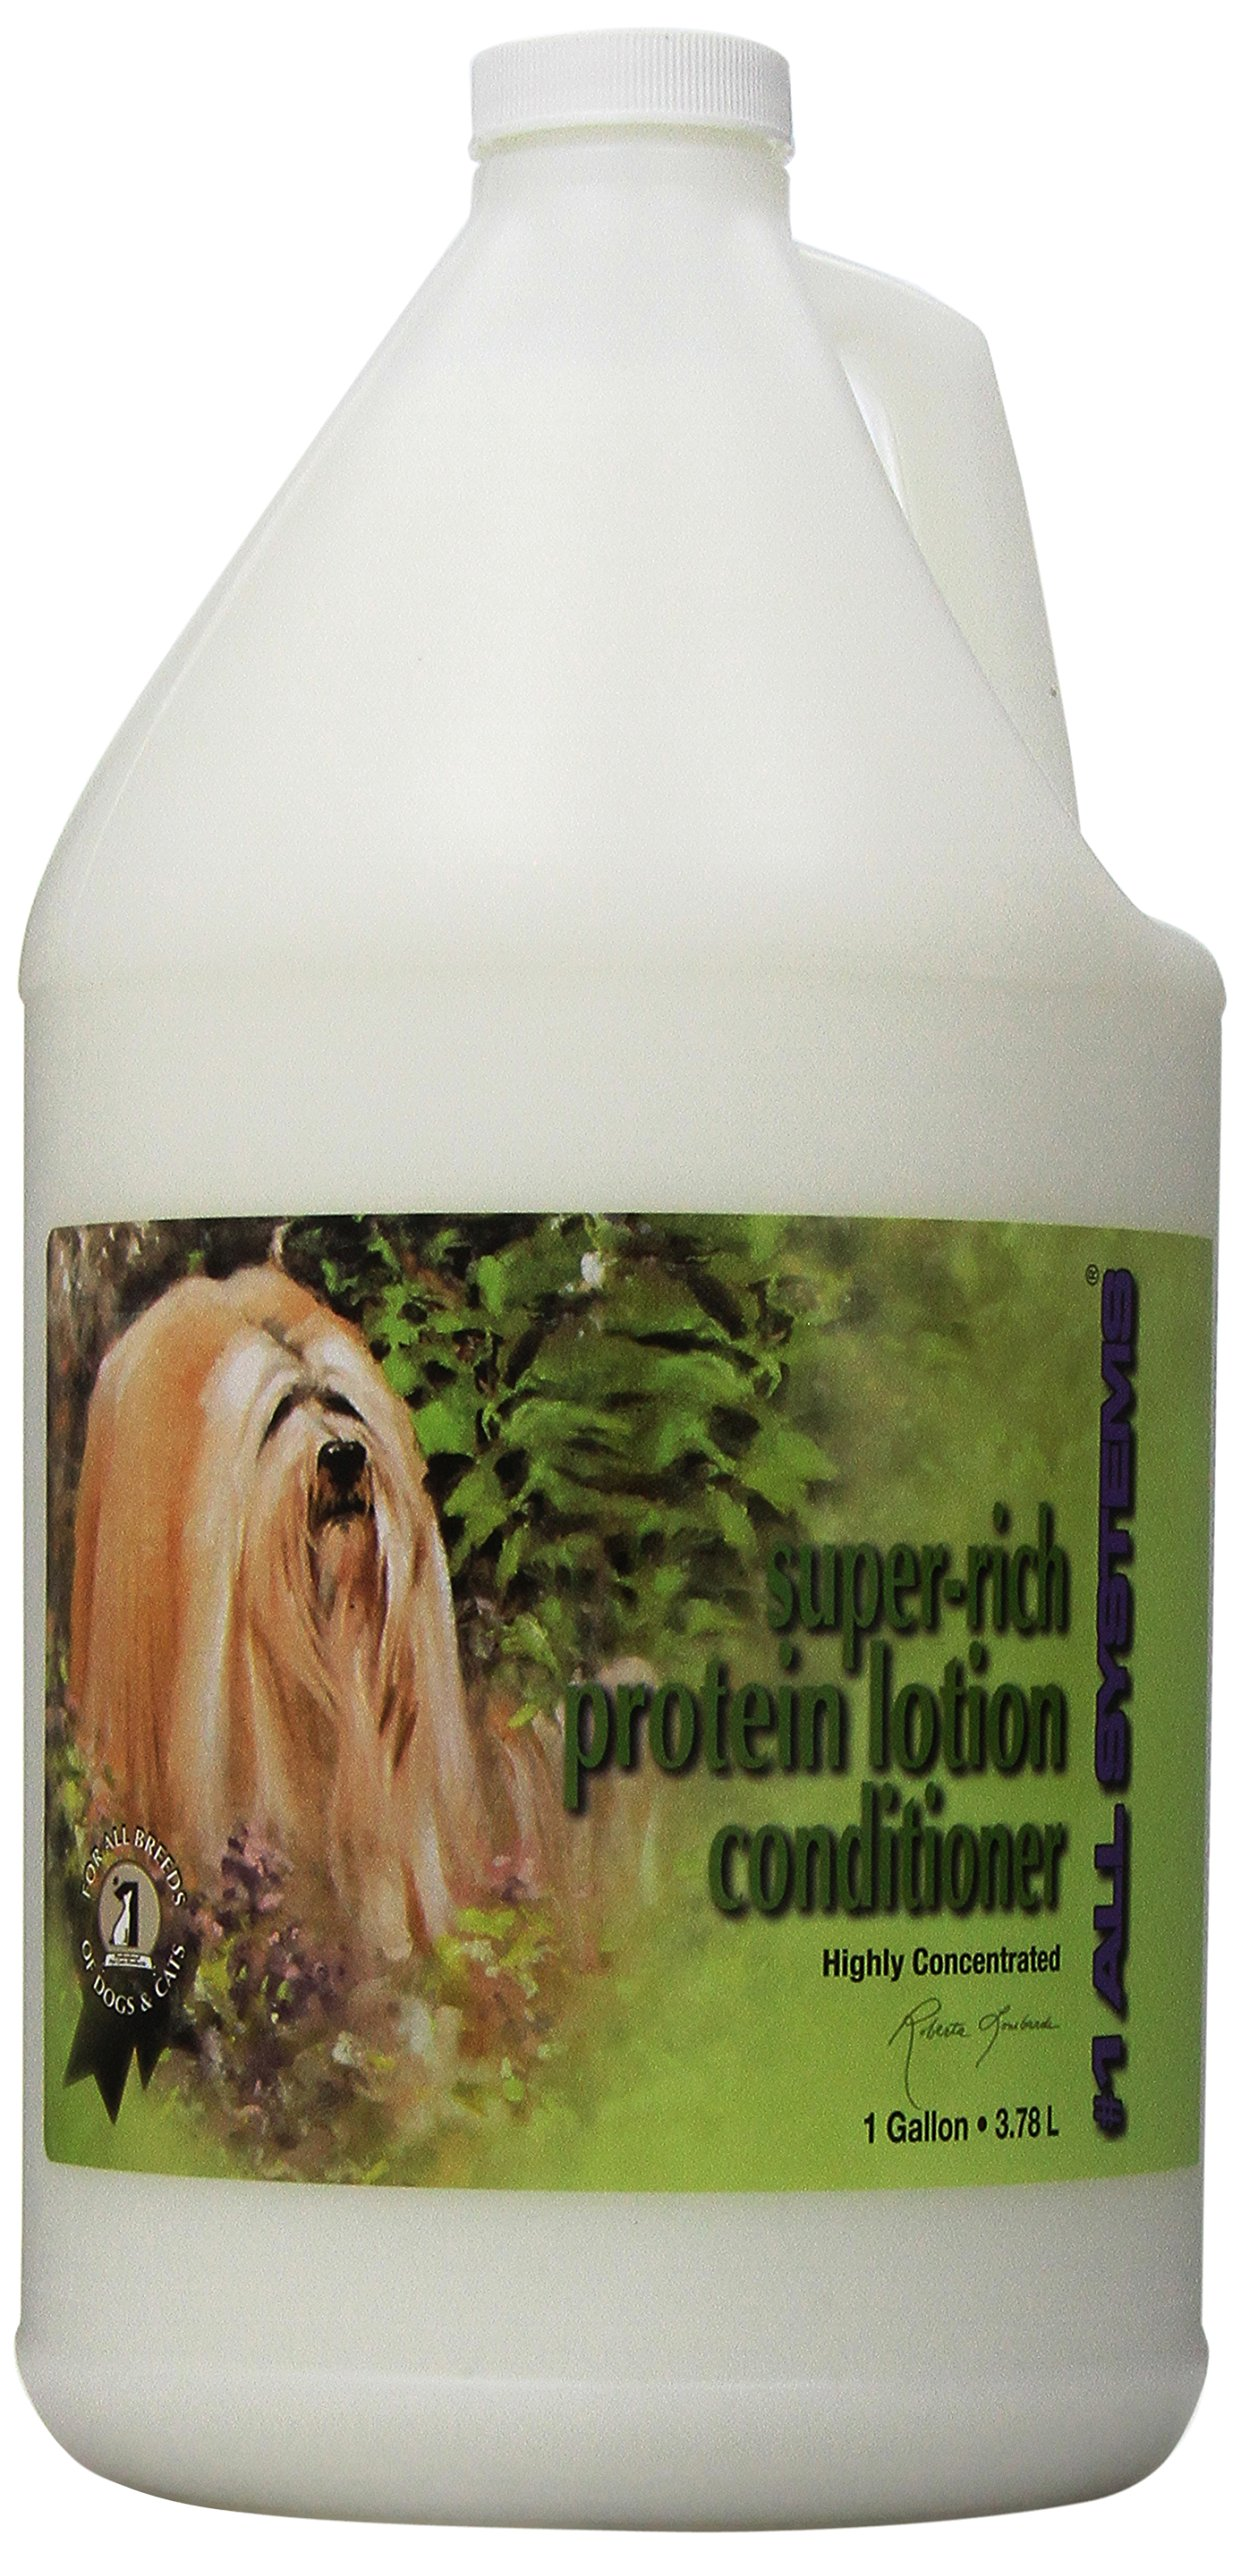 #1 All Systems Super-Rich Protein Lotion Pet Conditioner, 1-Gallon by #1 All Systems (Image #1)